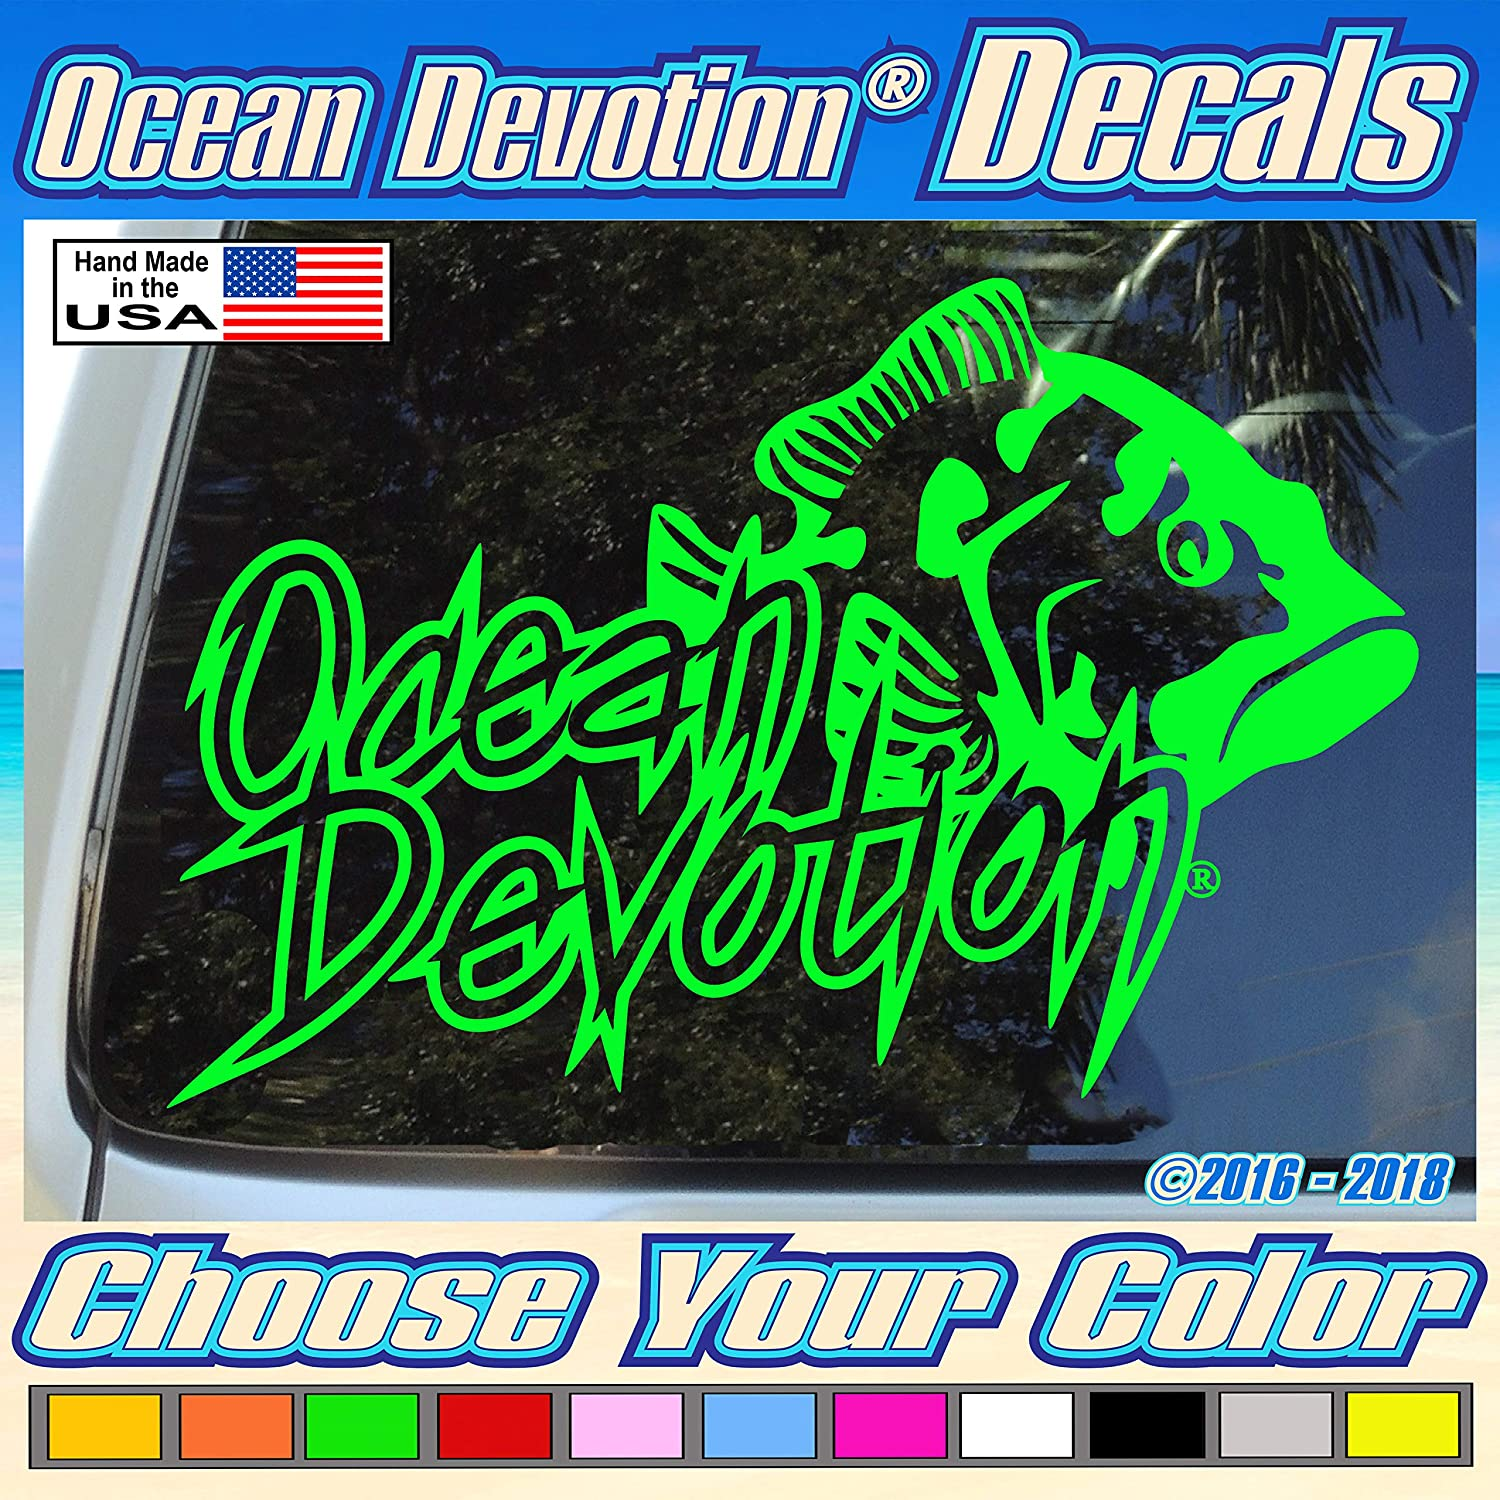 "Grouper Fish ""Ocean Devotion®"" Vinyl Decal/Sticker 8w x 5h inches - Keywords... Sea Life, Surf, Surfing, Fishing, Salt Life, Reel Life, Beach Life, Automobile, Car, Truck, Boat, Window"